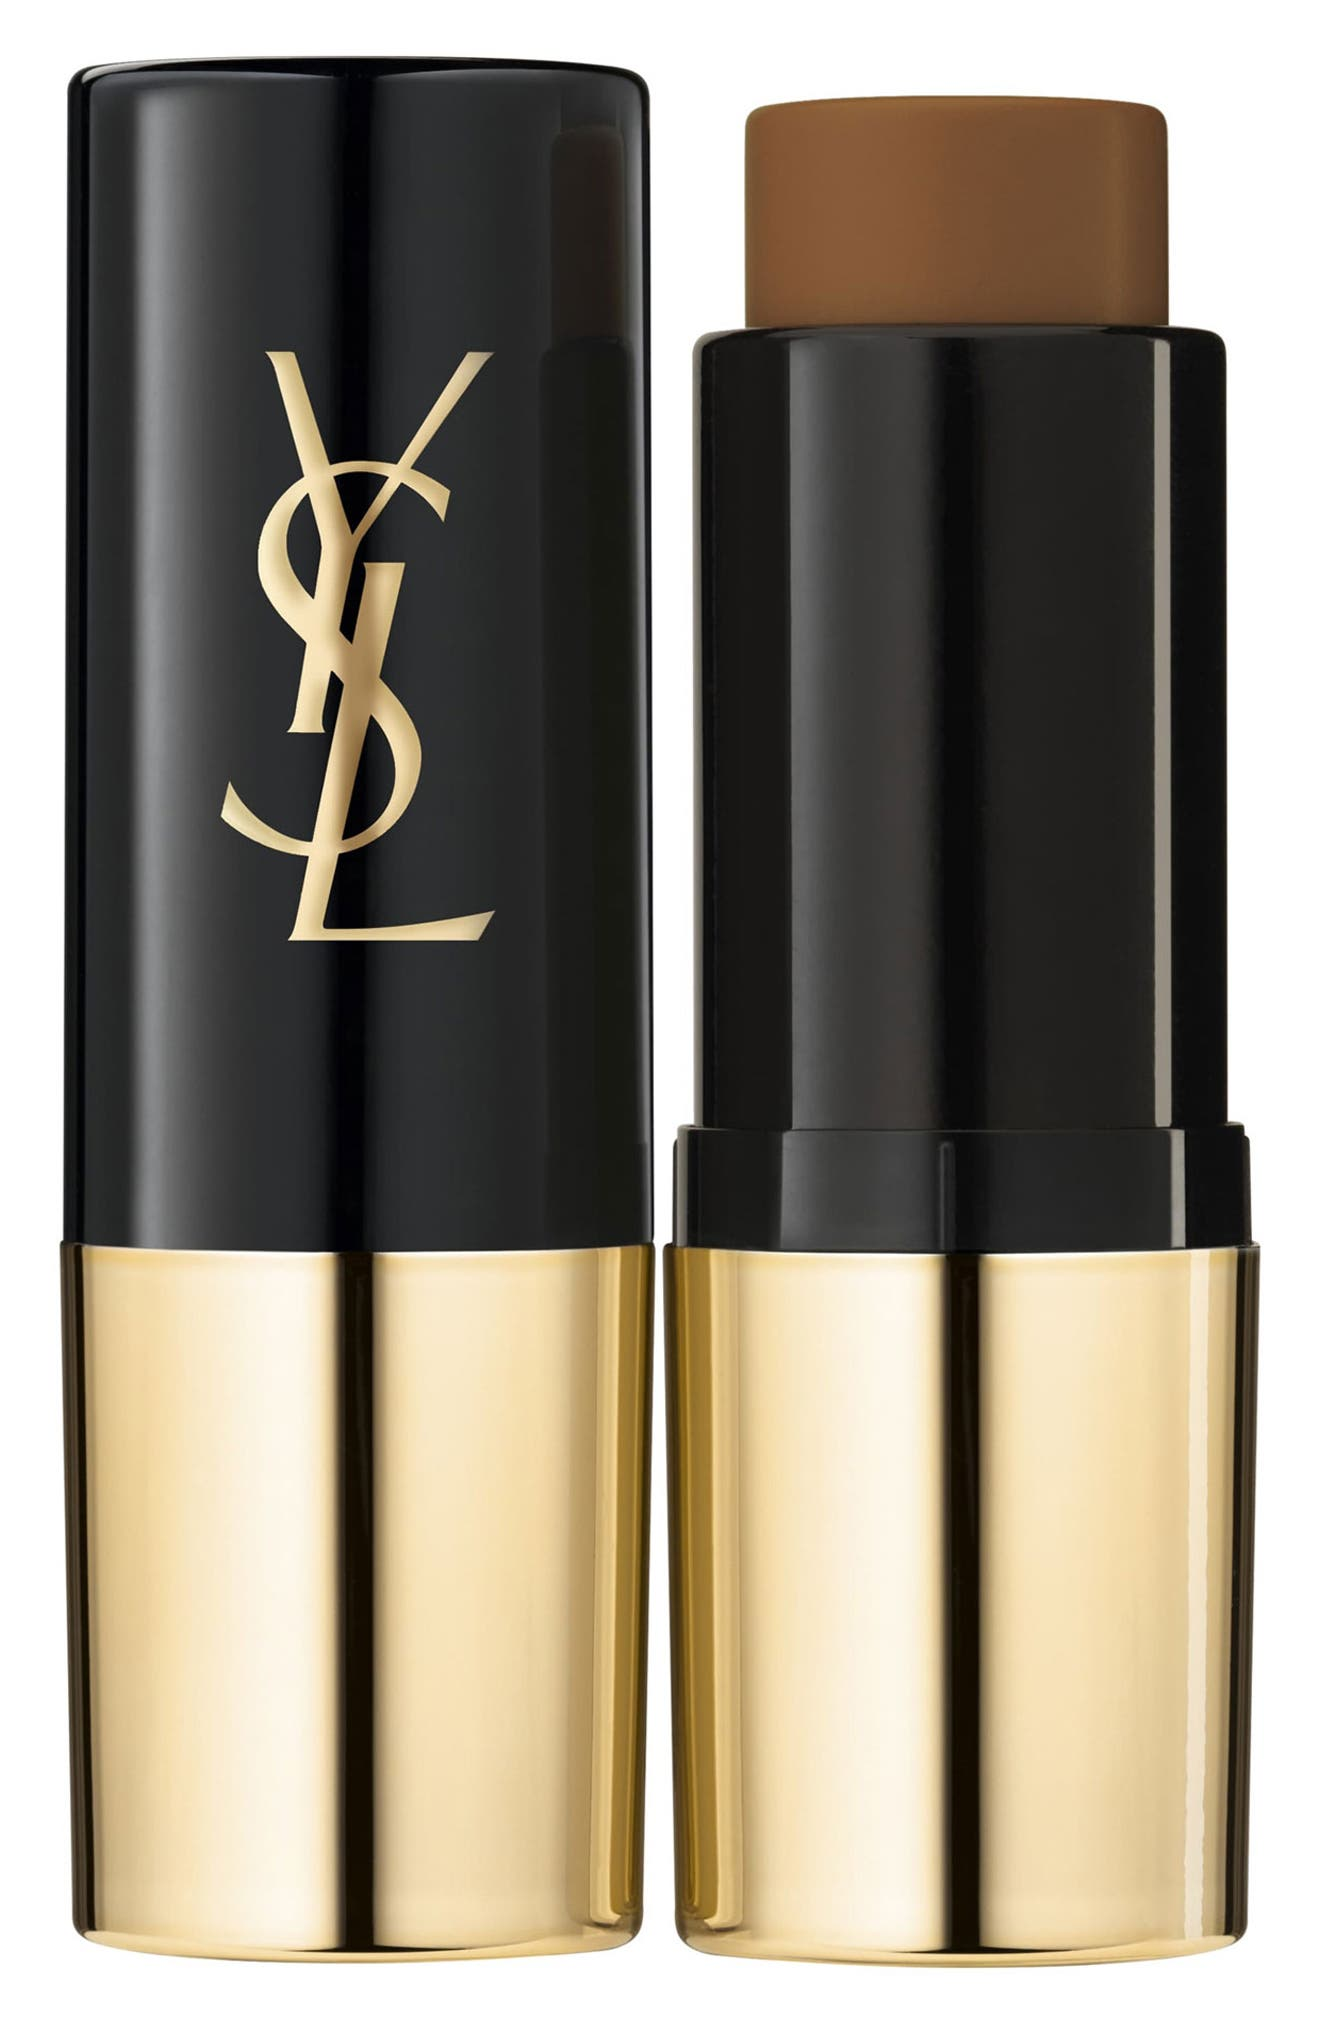 Yves Saint Laurent All Hours Foundation Stick - B80 Chocolate